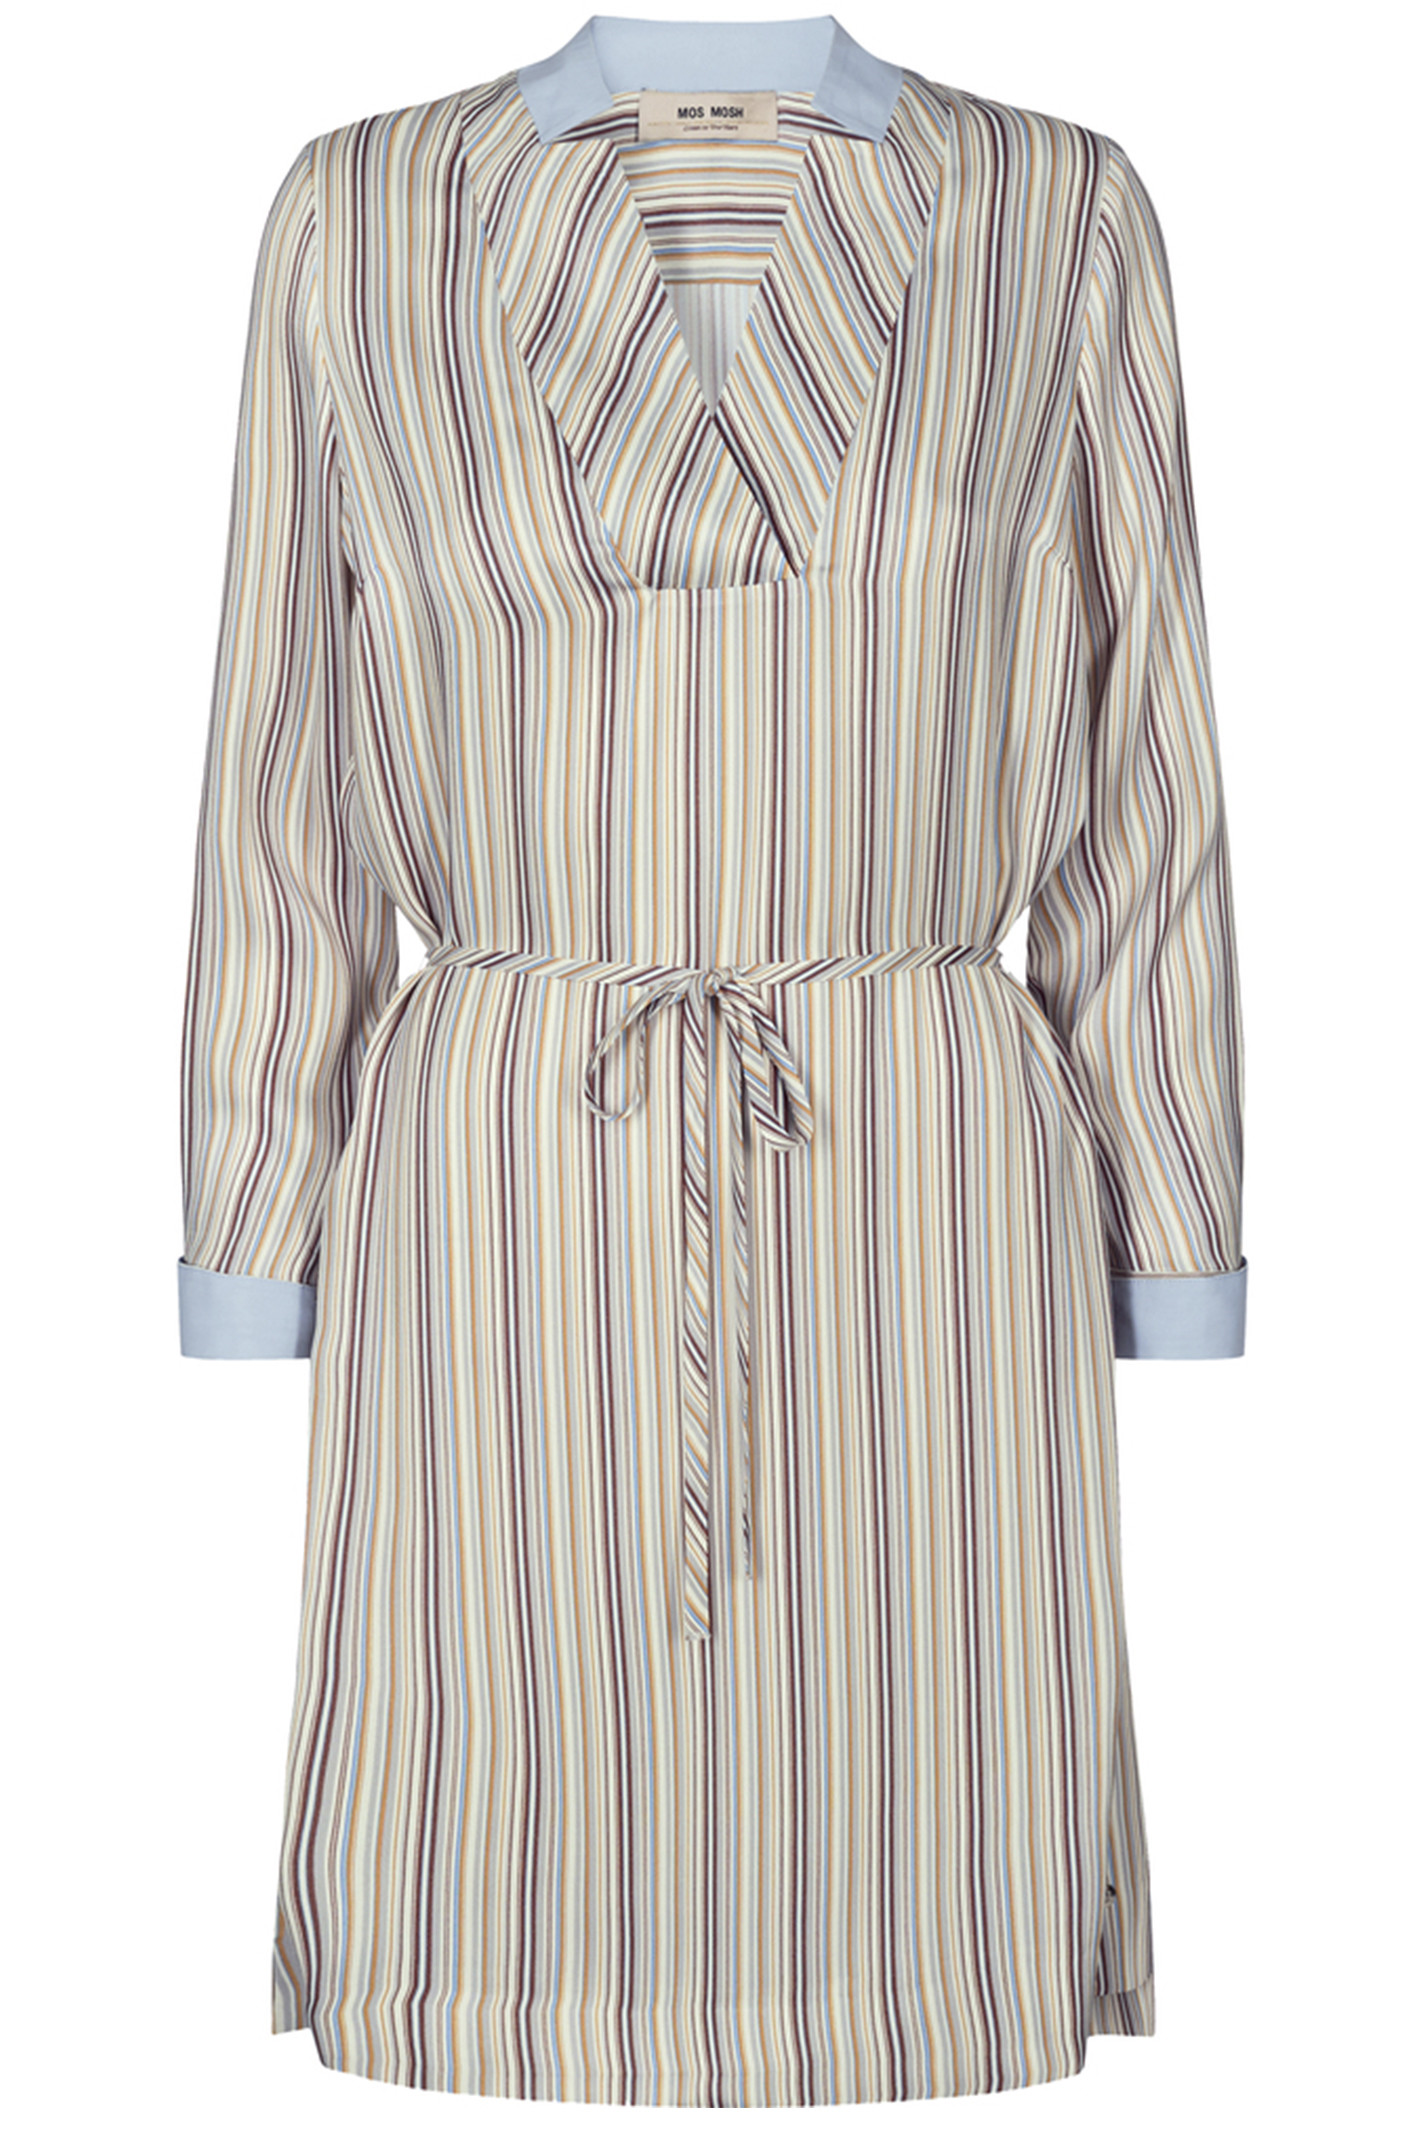 MOS MOSH 132281 LIPA RIVER DRESS Light Blue Stripe